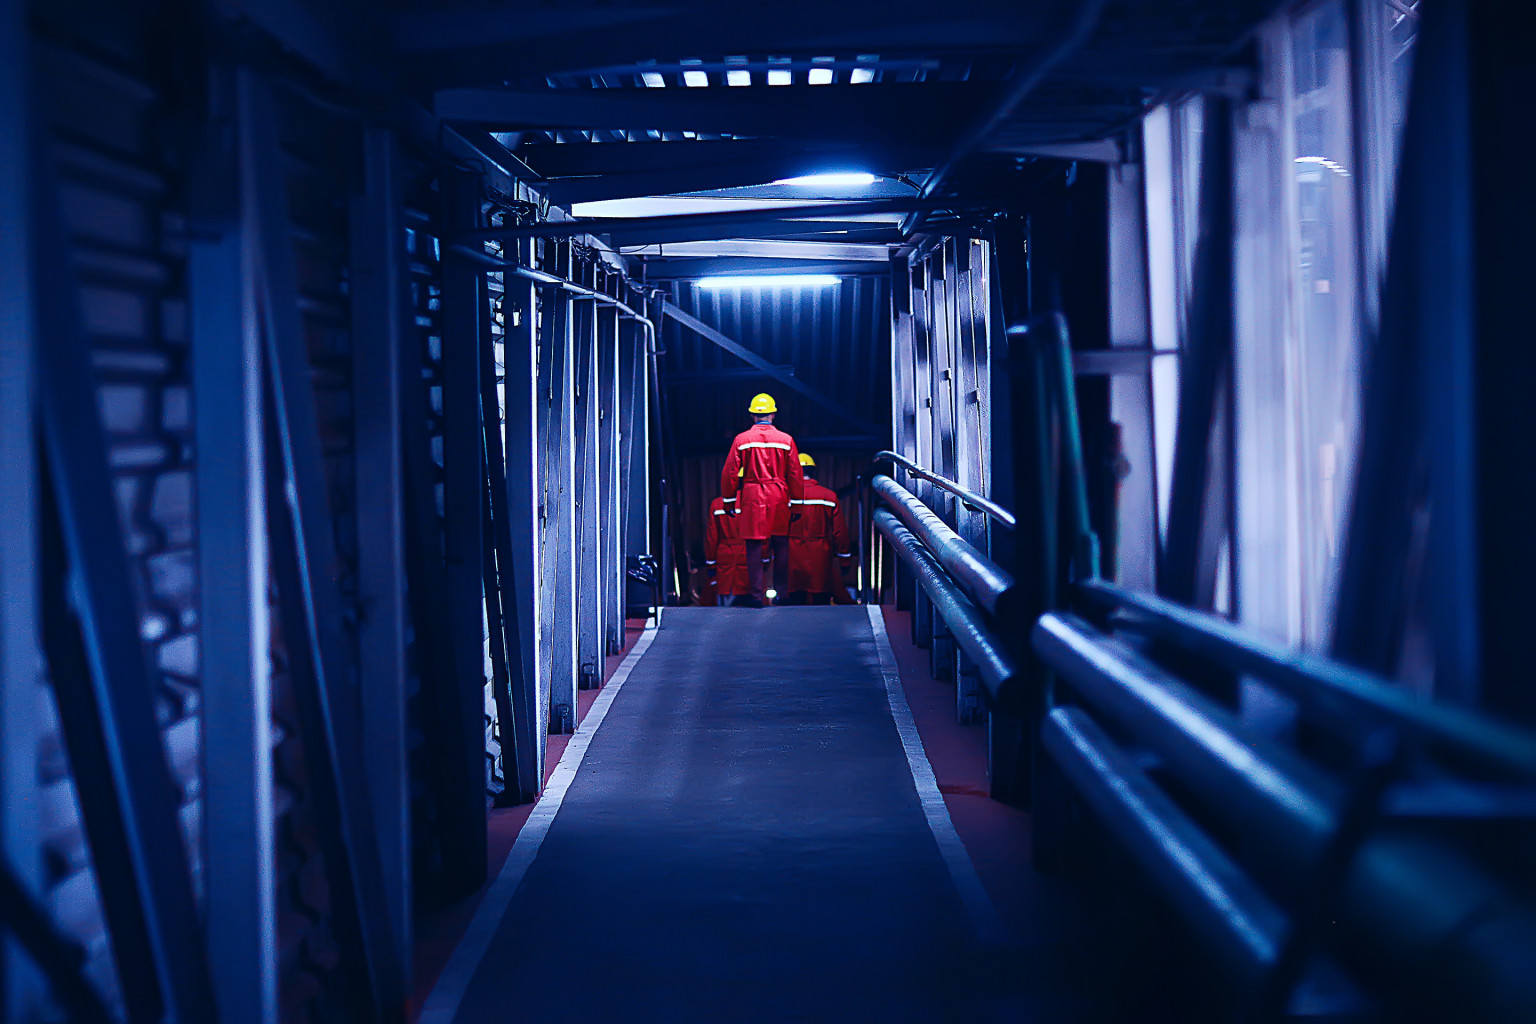 Men on offshore oil platform in a tunnel